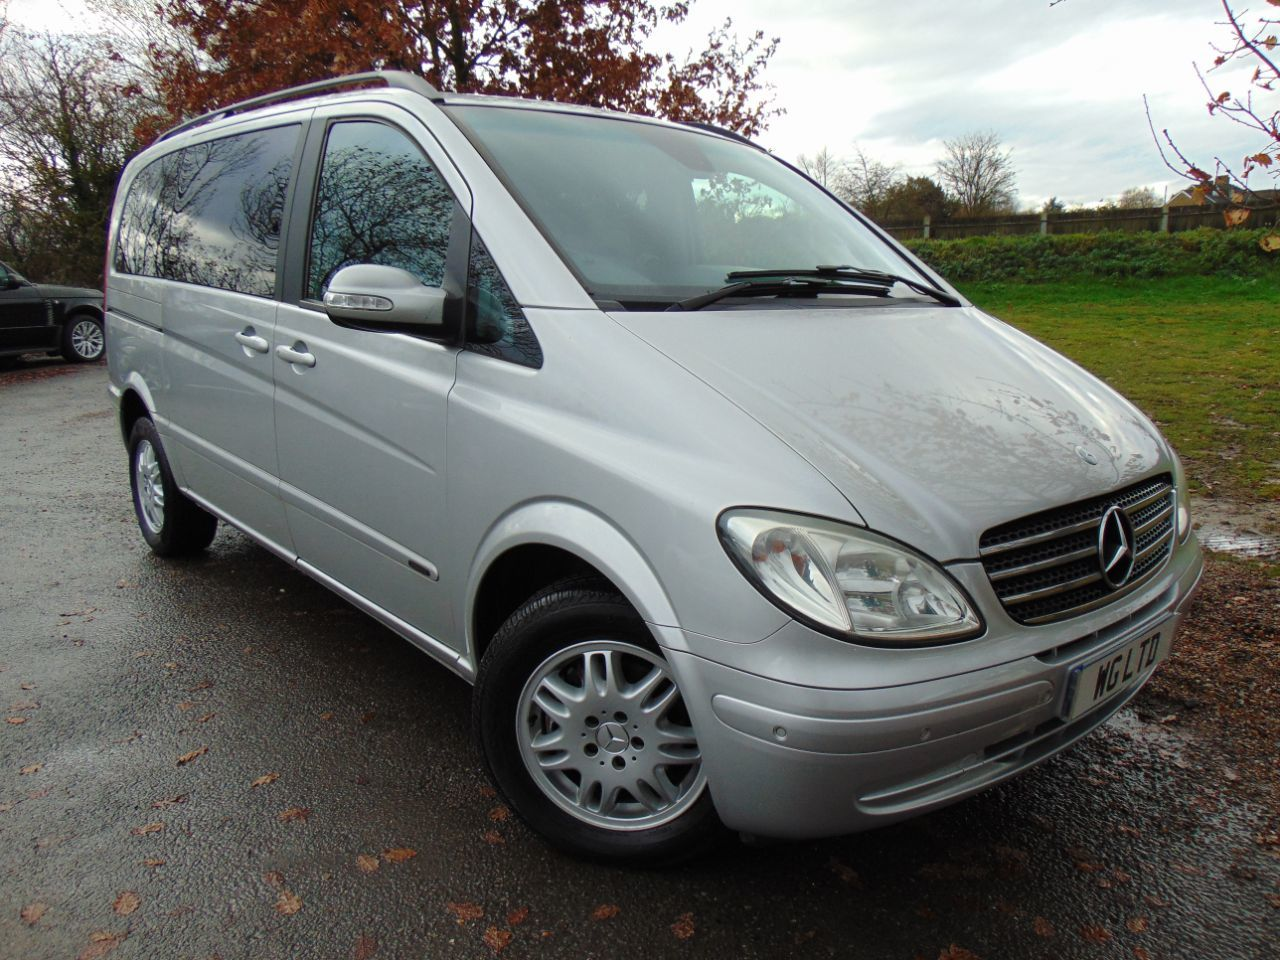 Mercedes-Benz Viano 2.2 CDI Ambiente 5dr [150] Tip Auto (Privacy Glass! Electric Doors! ++) MPV Diesel Silver